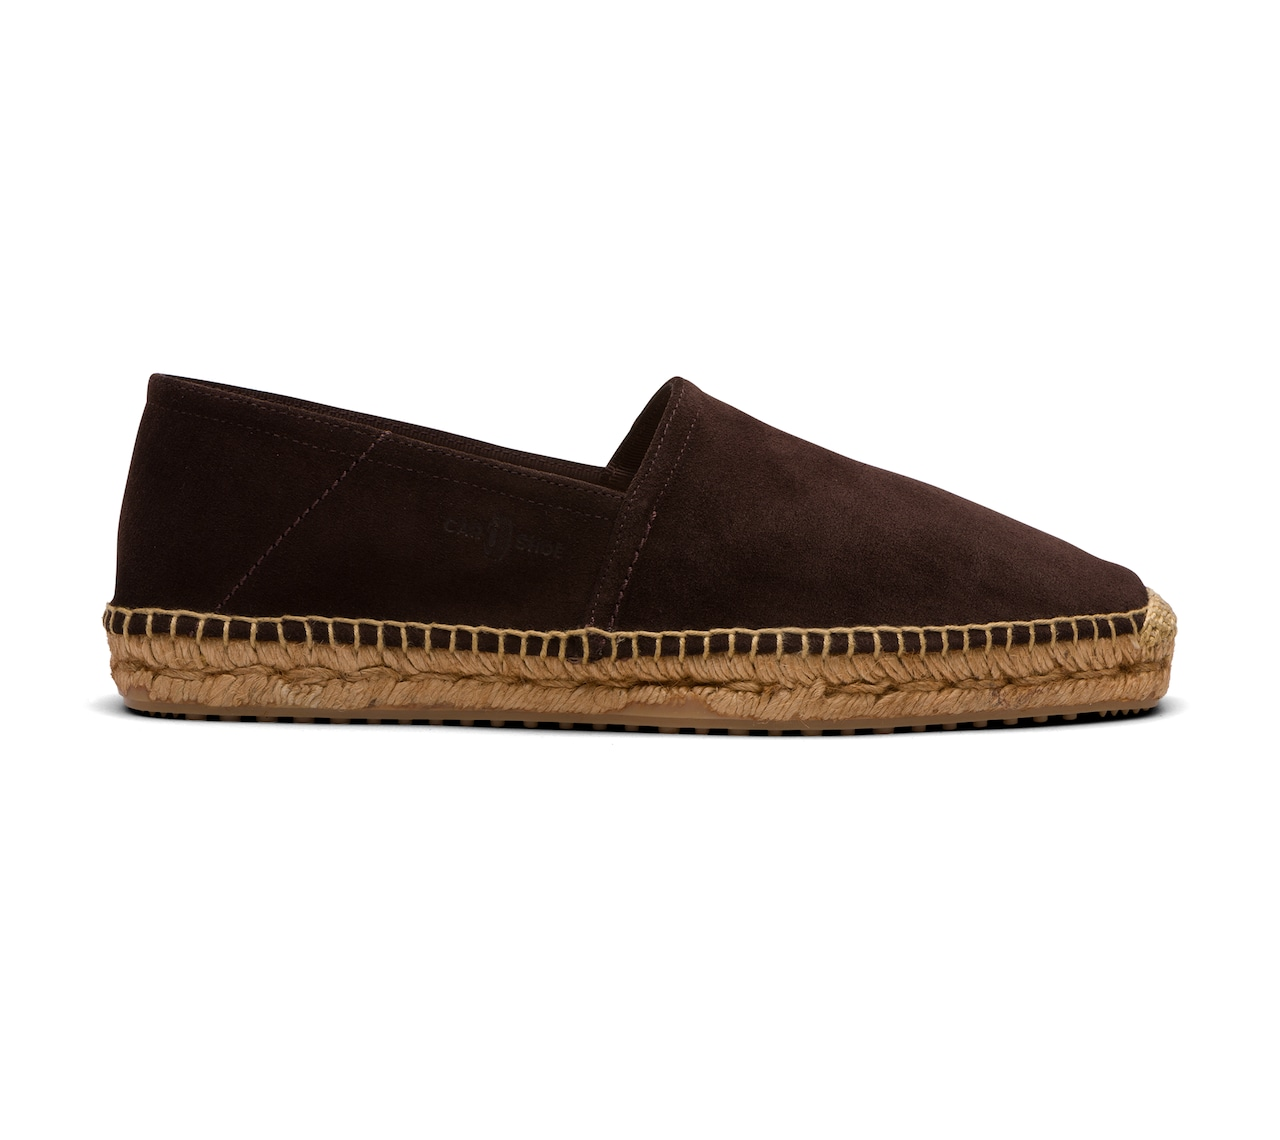 ESPADRILLAS IN UNLINED SUEDE BROWN